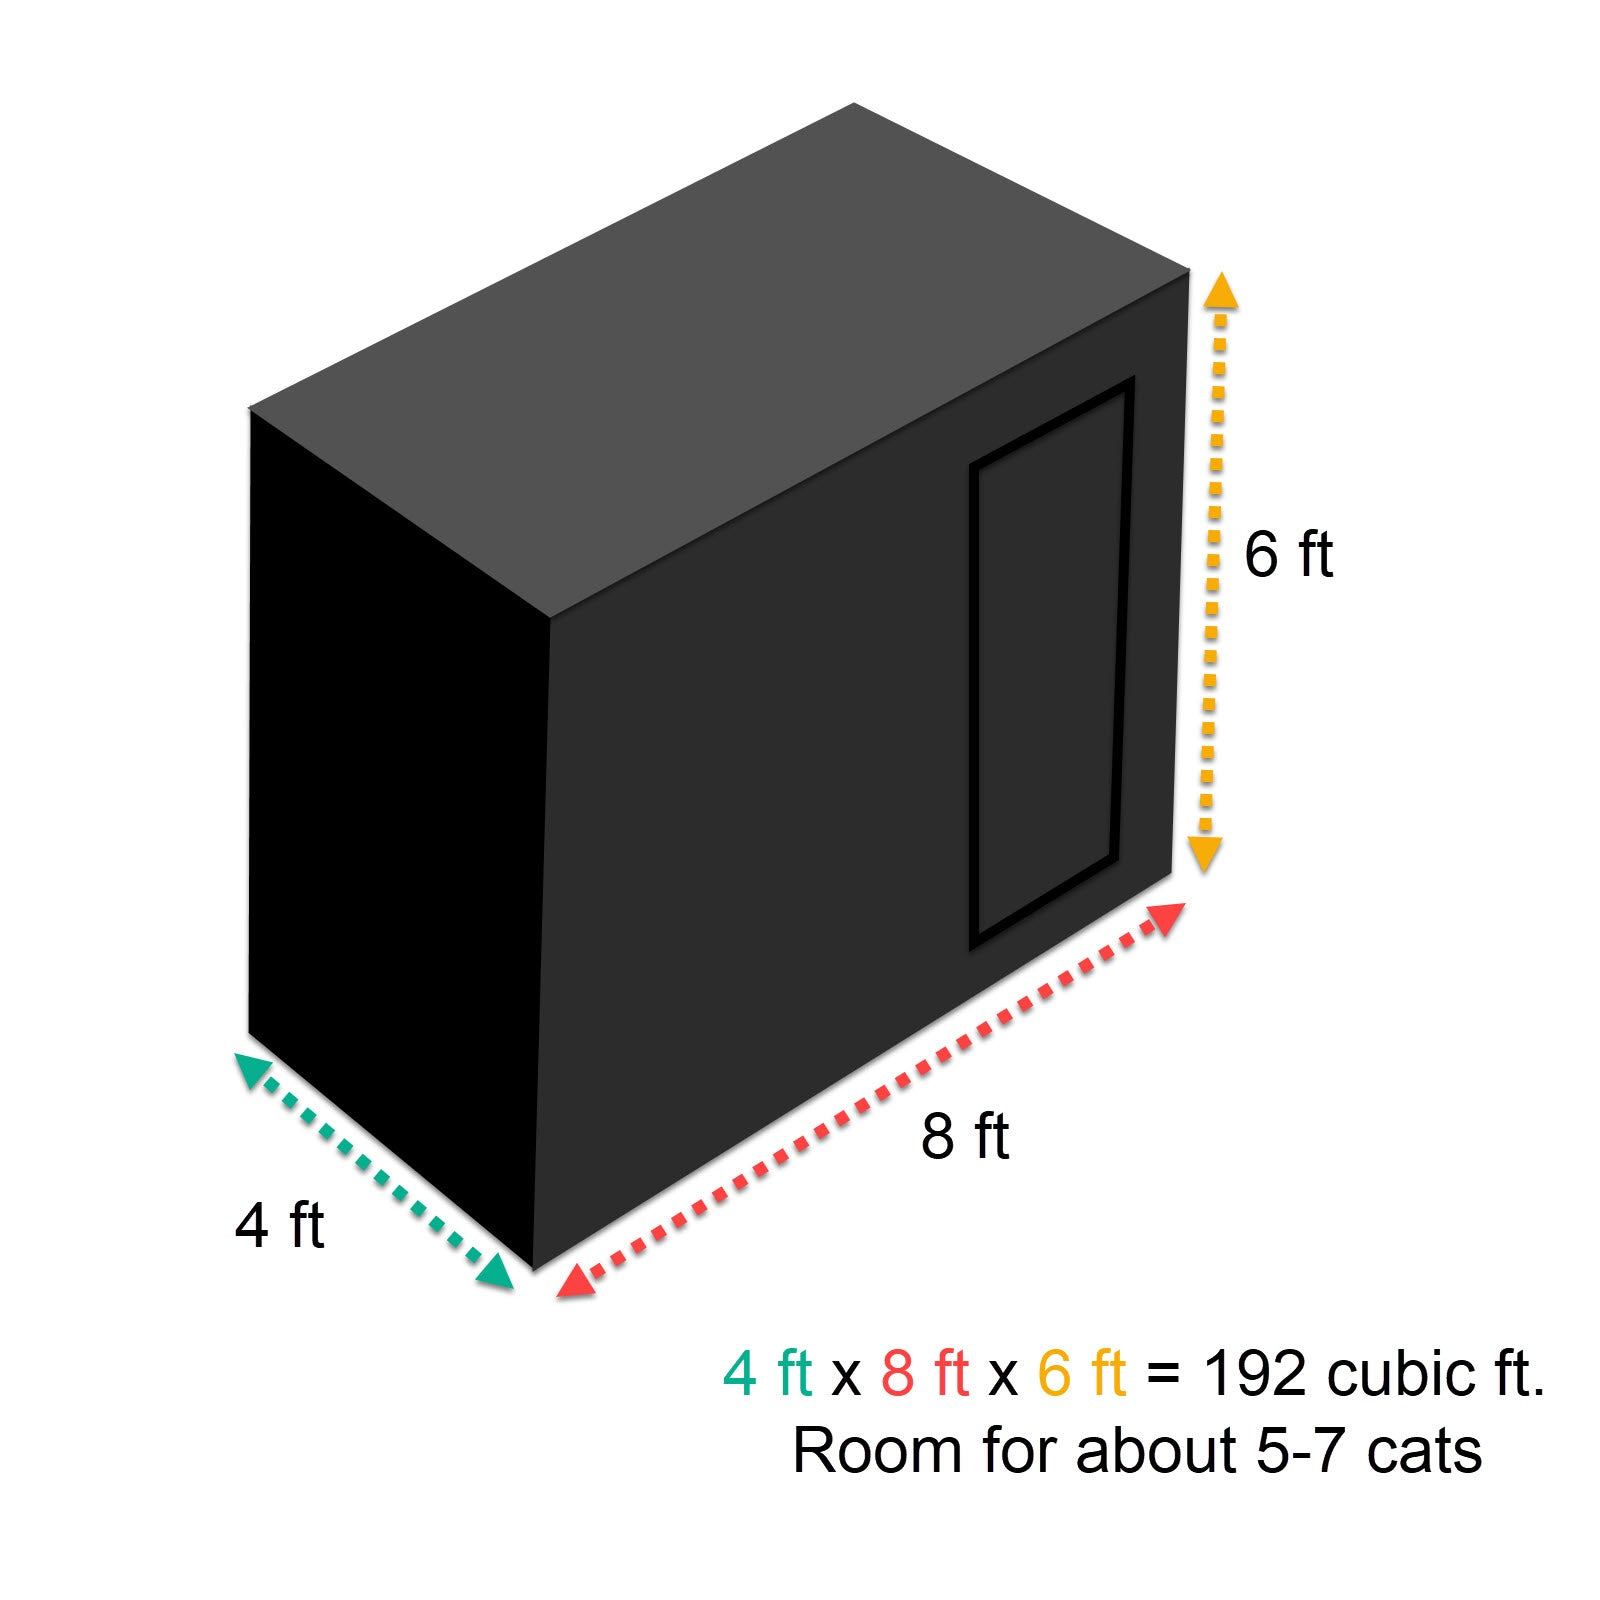 diagram of catio dimensions and cubic feet